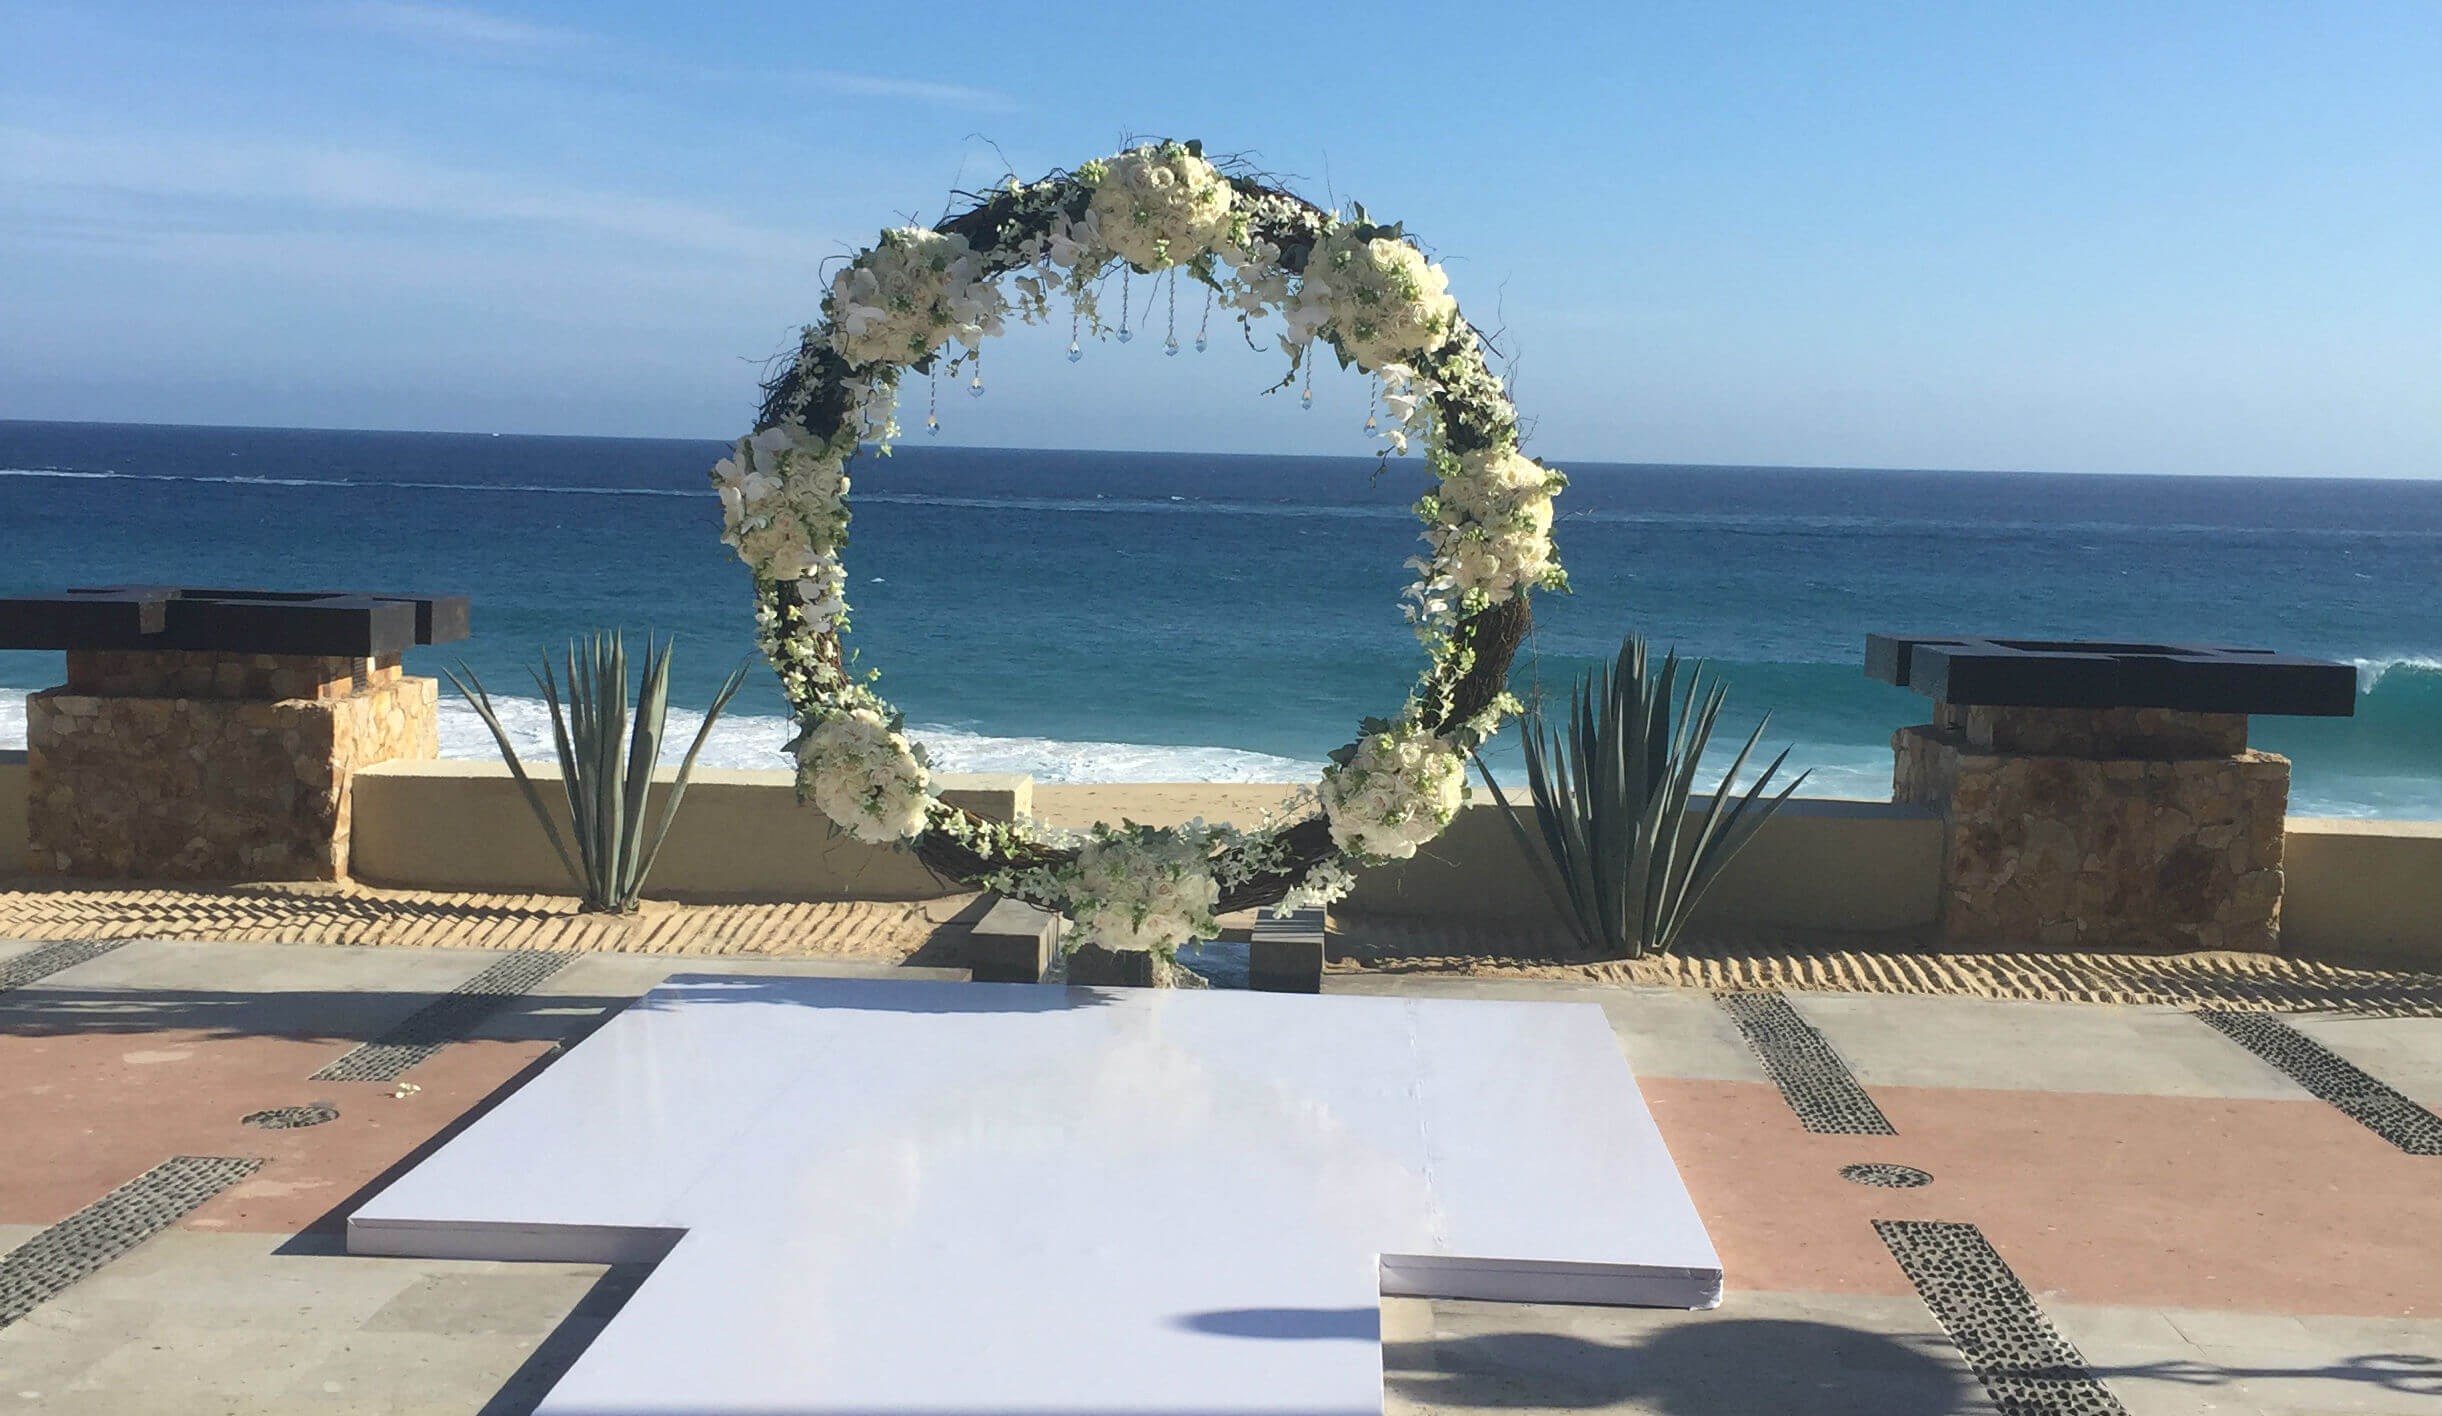 Lauren & Chris's – October 7th 2017 at Resort at Pedregal